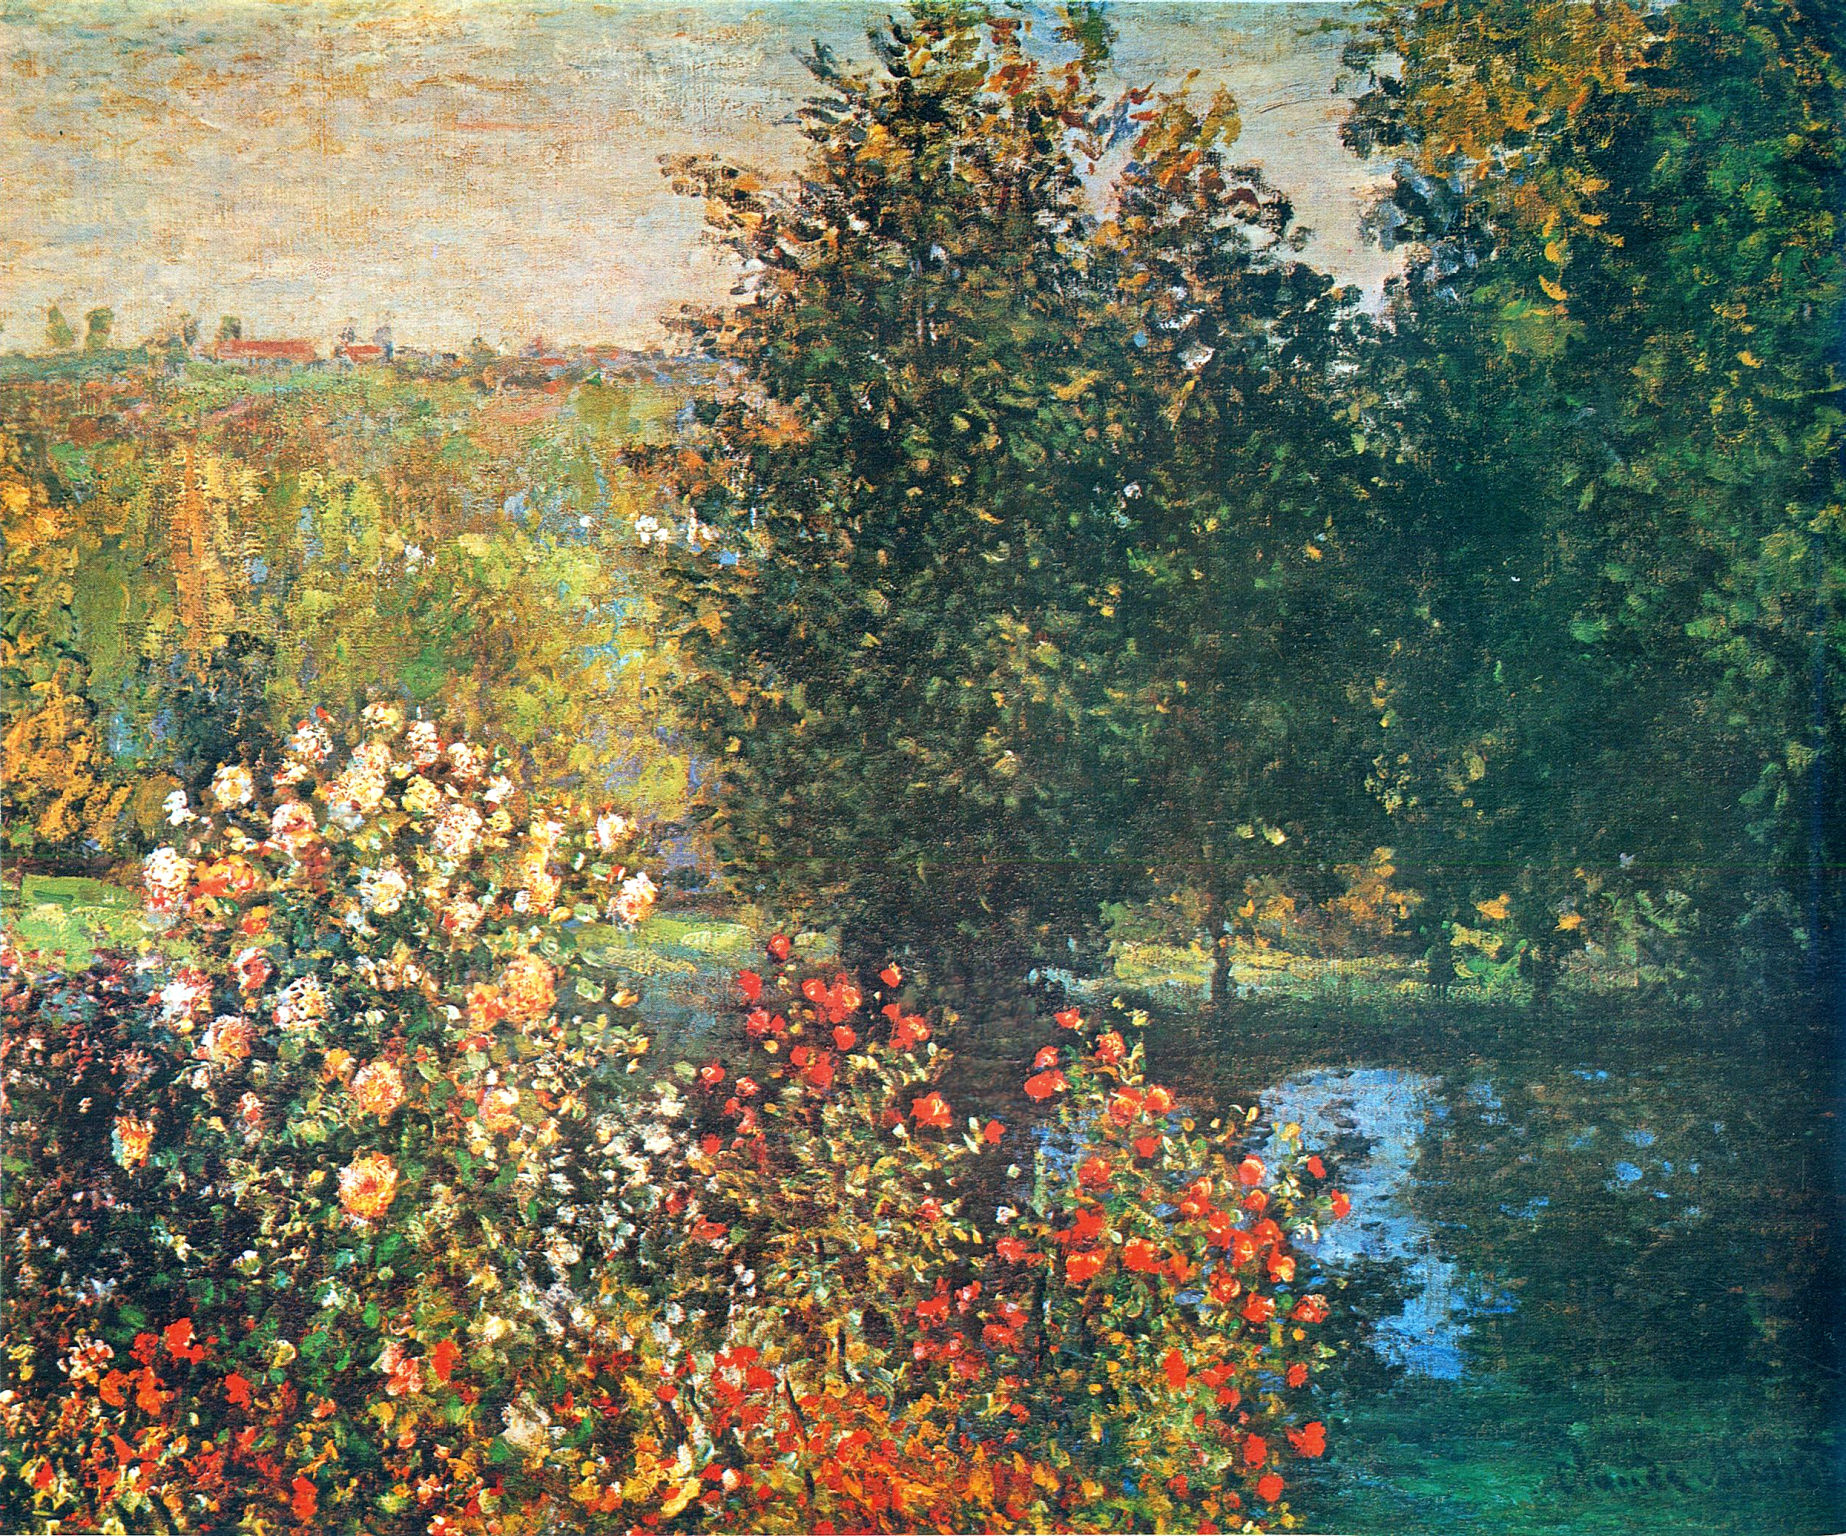 roses in the hoshede s garden at montregon claude monet encyclopedia of visual. Black Bedroom Furniture Sets. Home Design Ideas